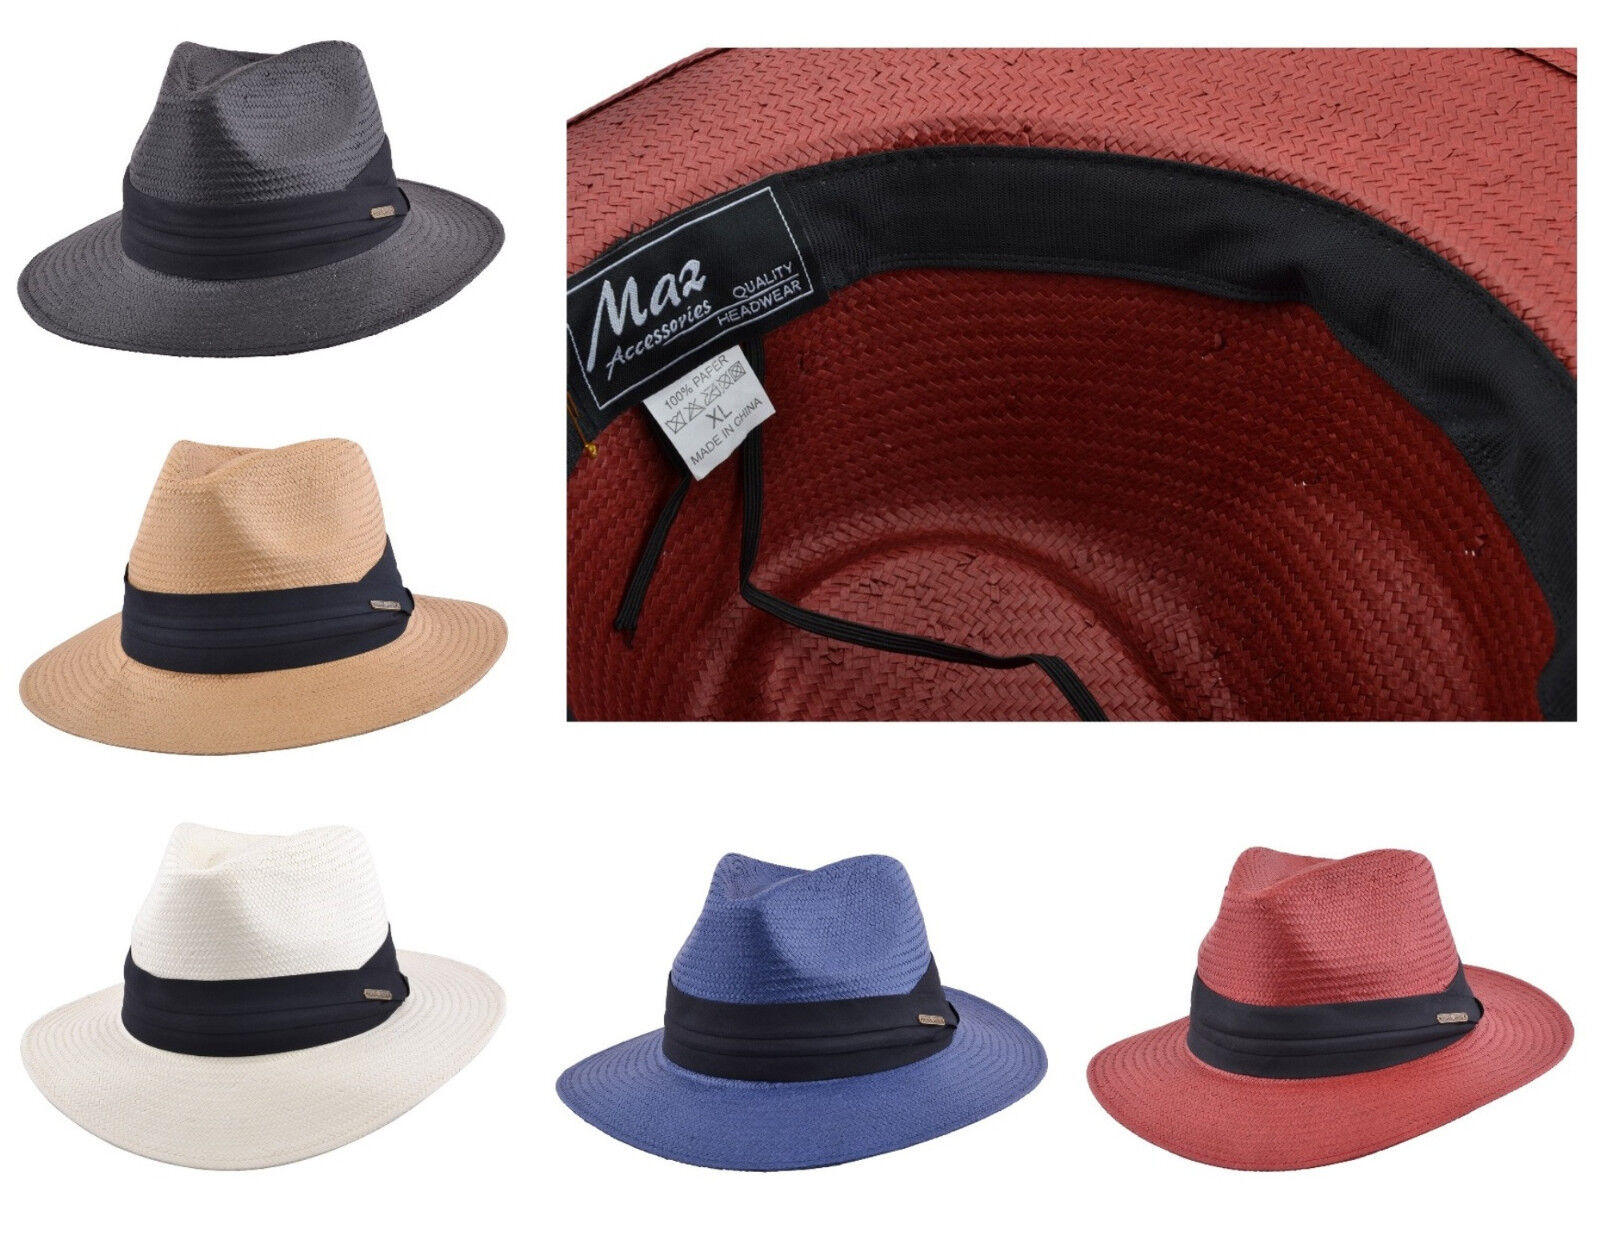 589f52d6 Details about Mens Ladies Packable Paper Straw Summer Panama Fedora Hat  With Band